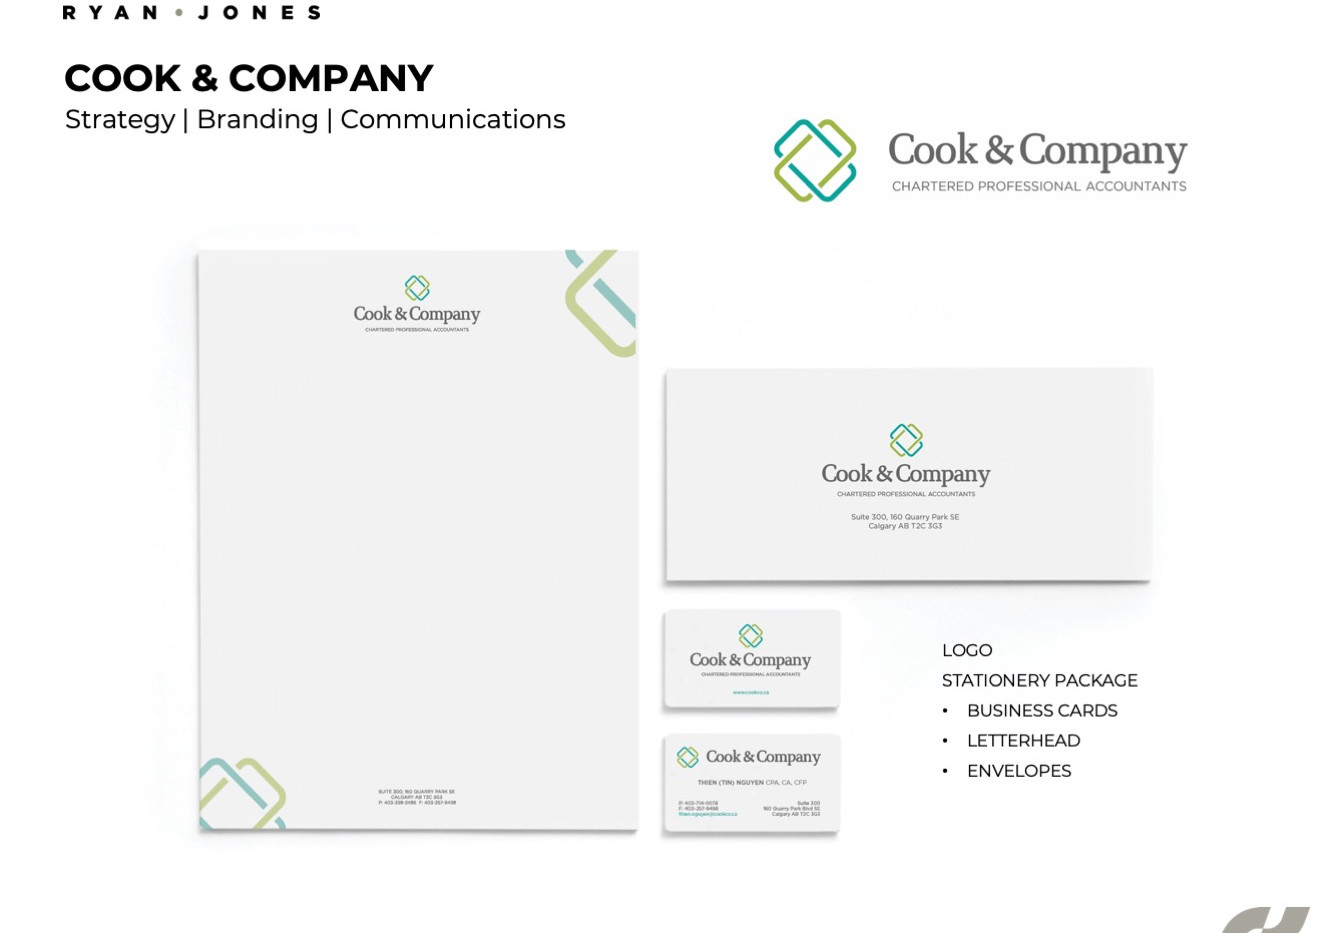 Cook & Company Chartered Professional Accountants